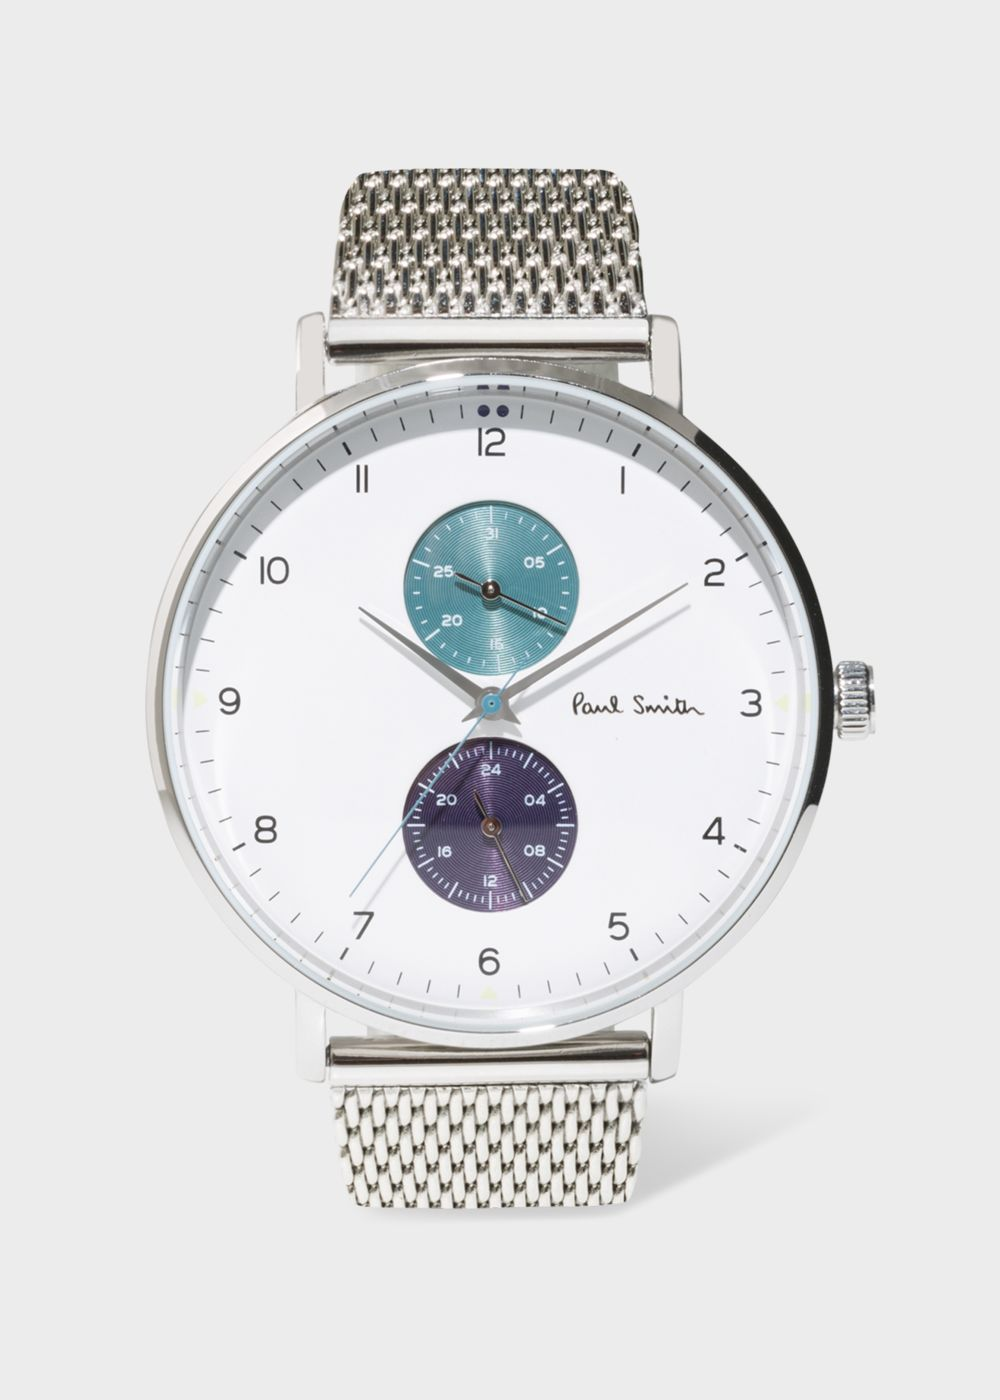 Paul Smith Men's White And Stainless Steel 'Track' Watch